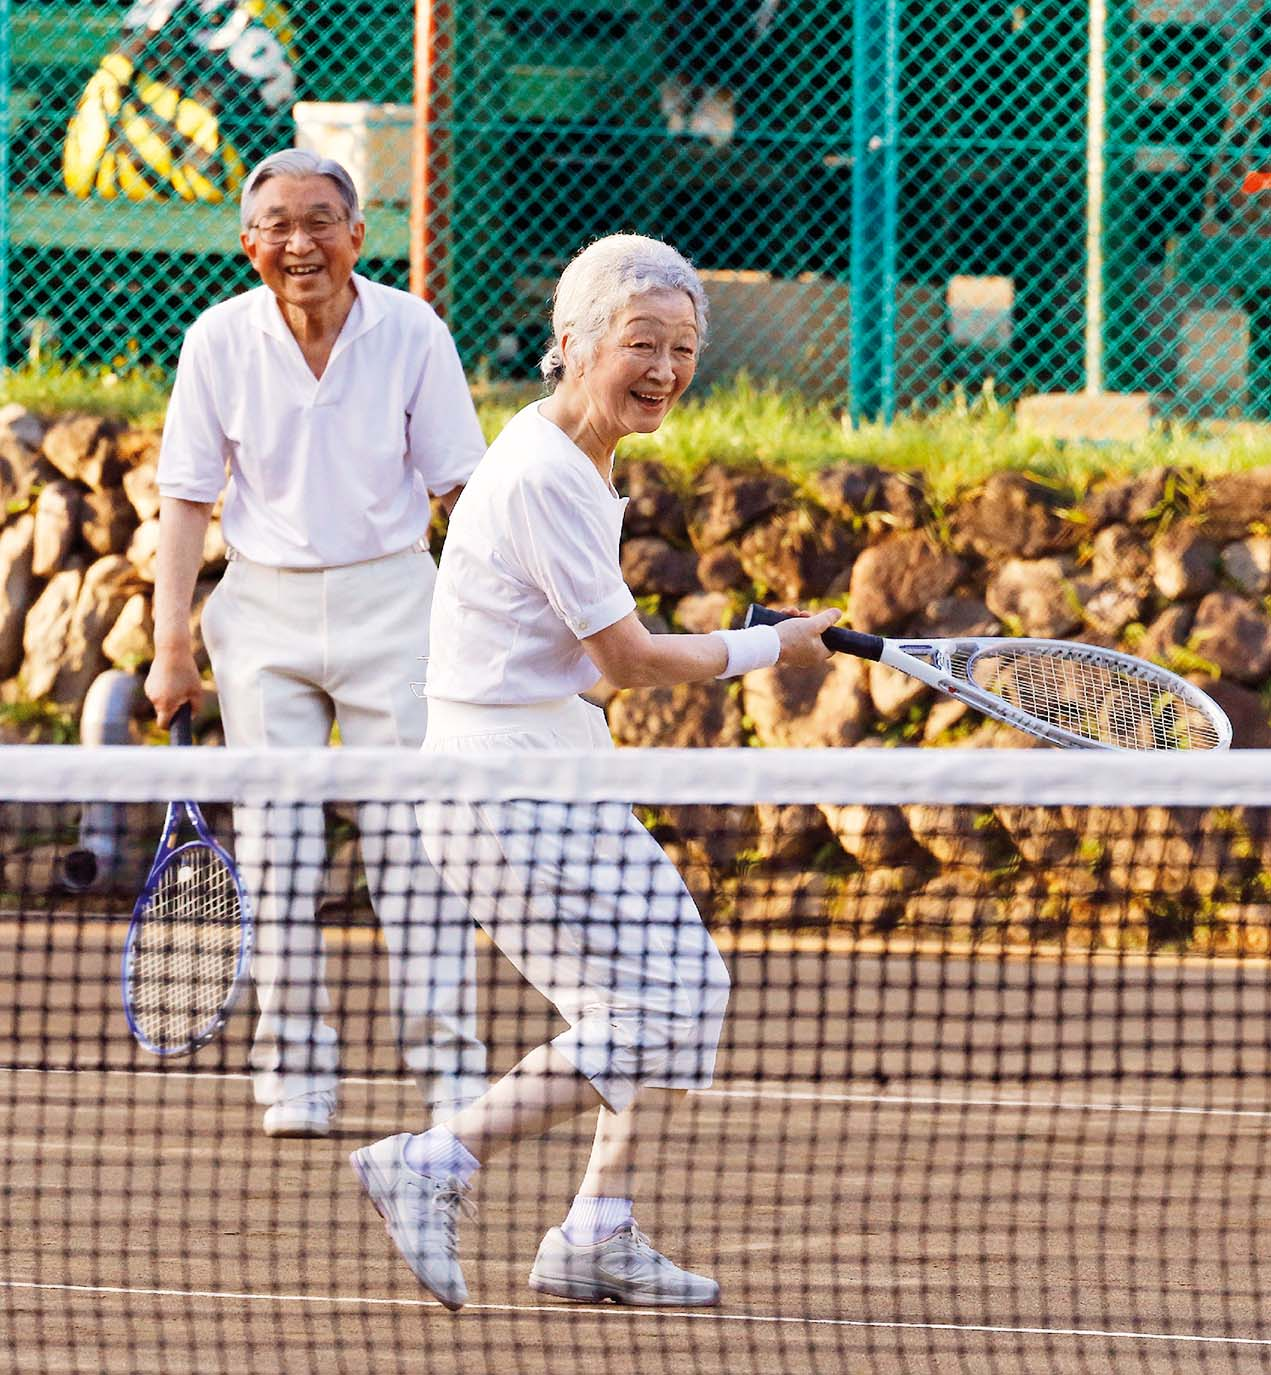 This photo taken on August 27, 2013 shows Japanese Emperor Akihito (L) and Empress Michiko (R) playing tennis at Japan's mountain resort Karuizawa in Nagano prefecture. The royal couple are taking a week-long summer rest at the mountain resort in central Japan.   JAPAN OUT, Image: 288094512, License: Rights-managed, Restrictions: JAPAN OUT, Model Release: no, Credit line: Profimedia, AFP